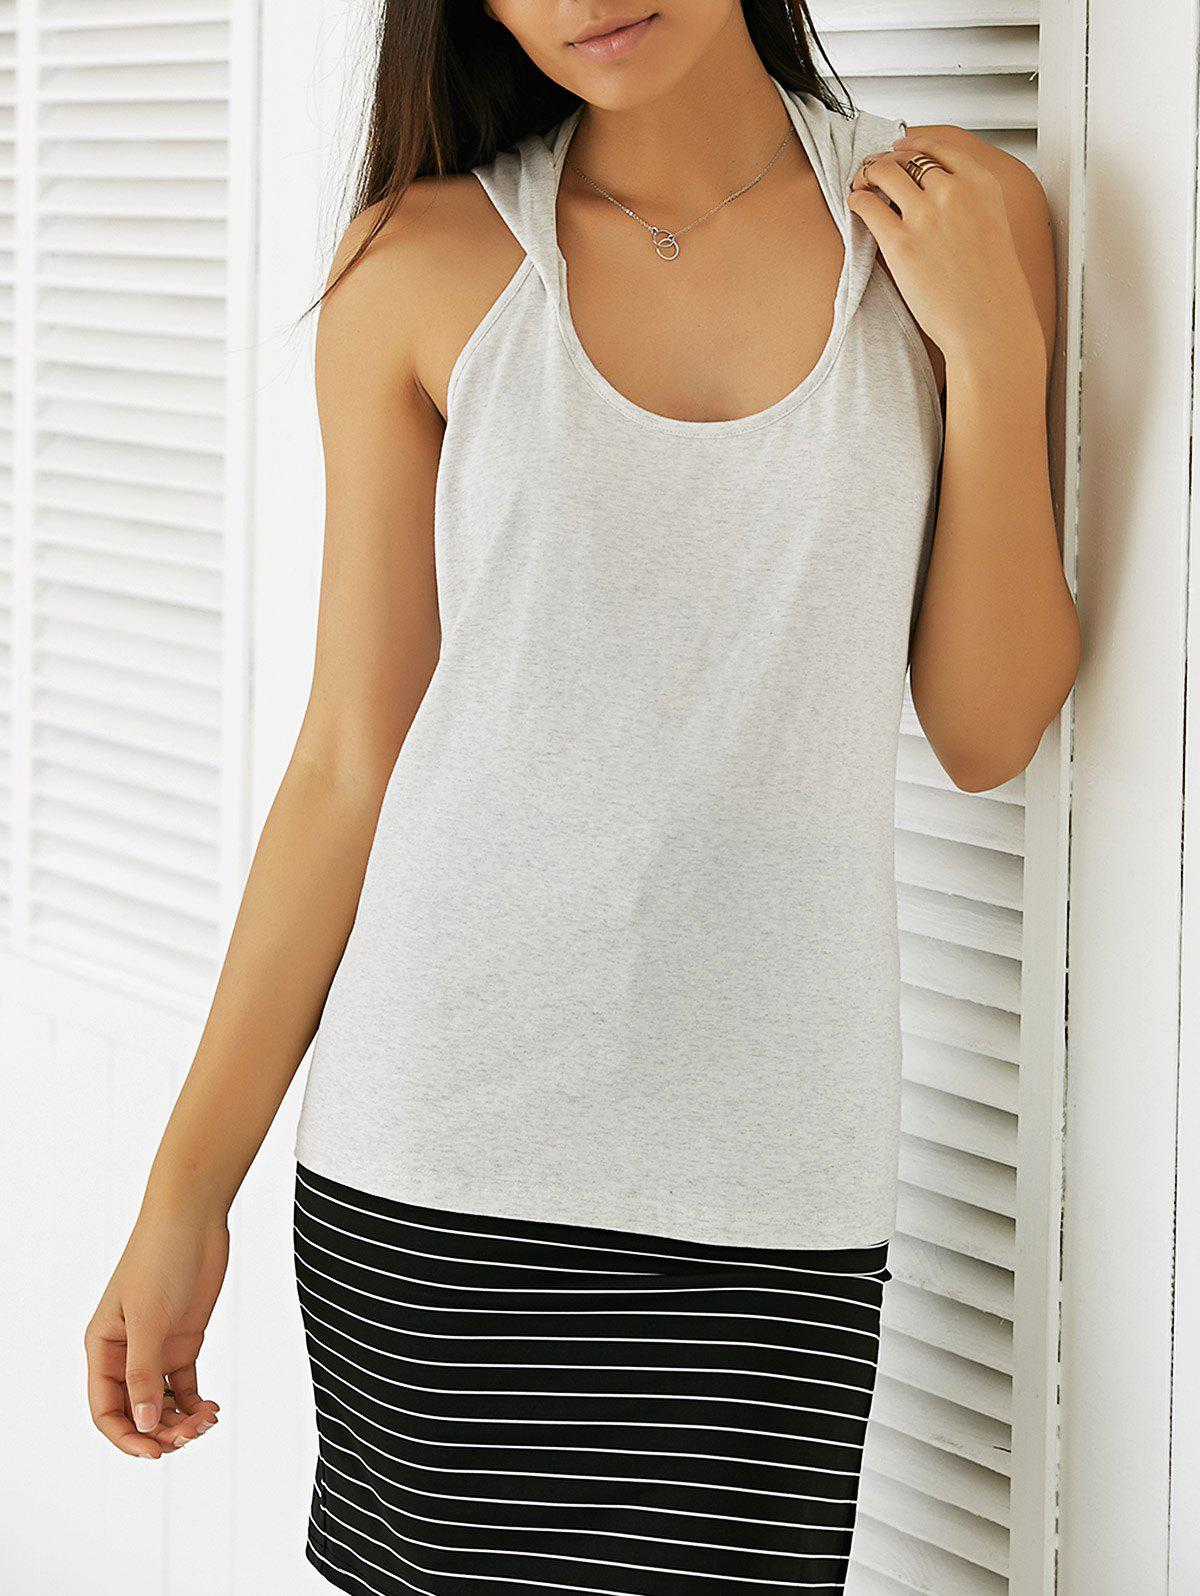 Casual Women's Slimming Round Neck Backless Top casual women s slimming round neck backless top